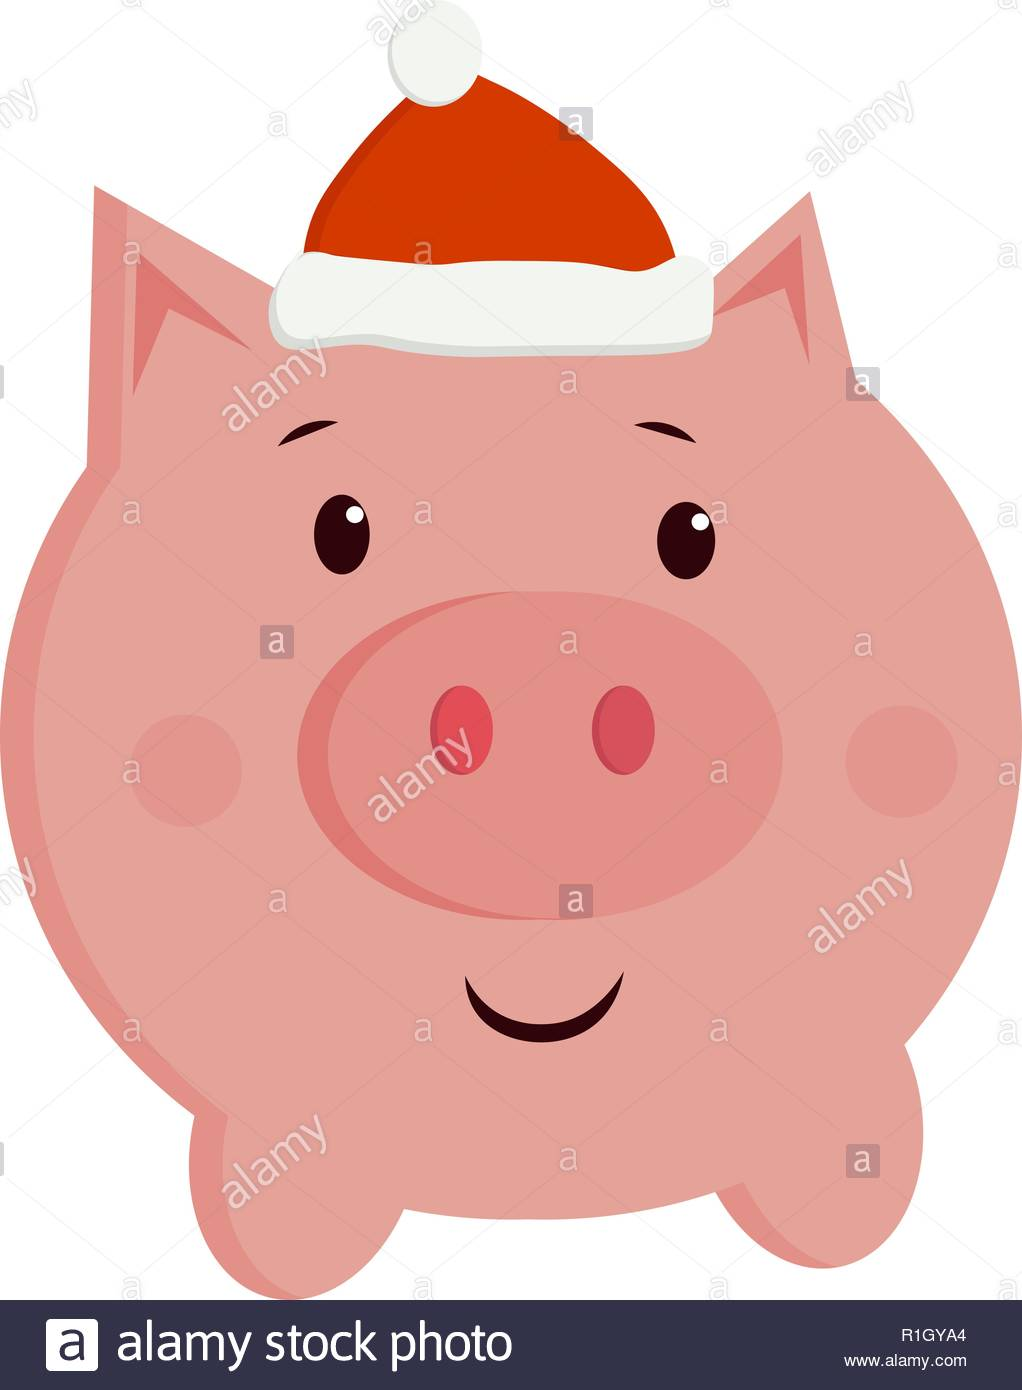 c90d9a9d06526 Christmas cartoon picture 2019. vector cute illustration of a pig in a new  year cap.